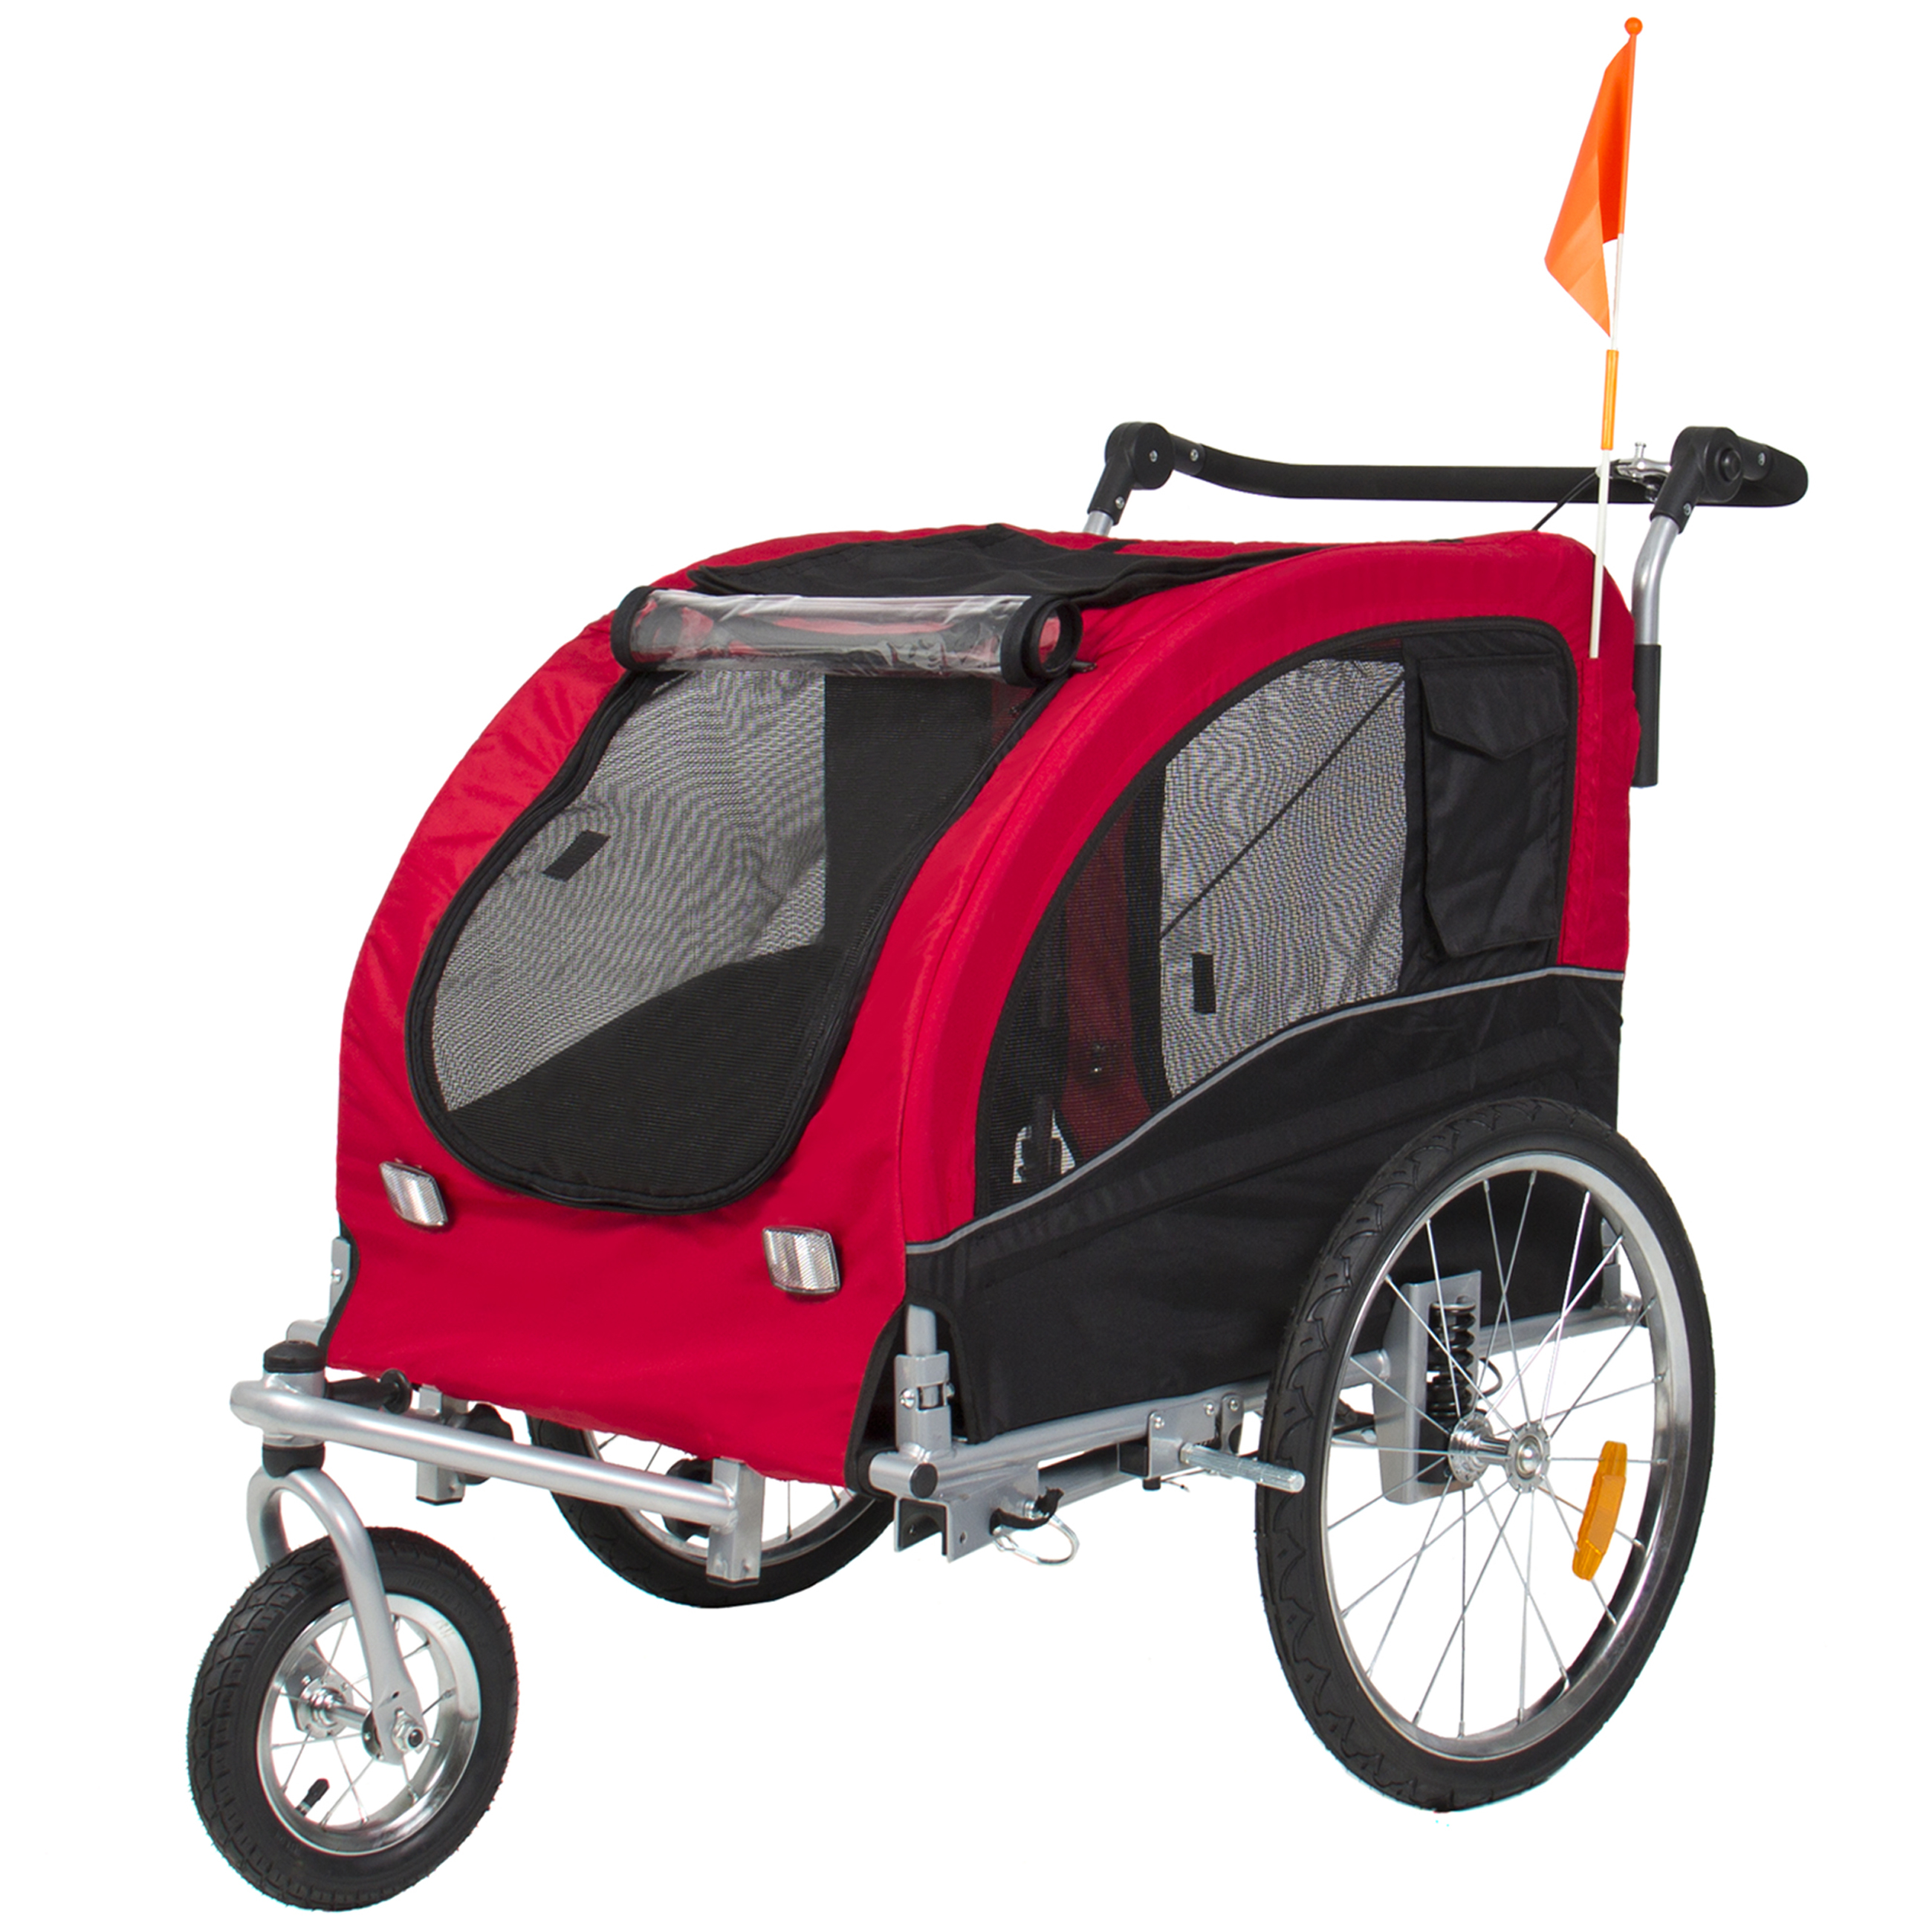 2 IN 1 Pet Dog Bike Trailer Bicycle Trailer Stroller Jogg...